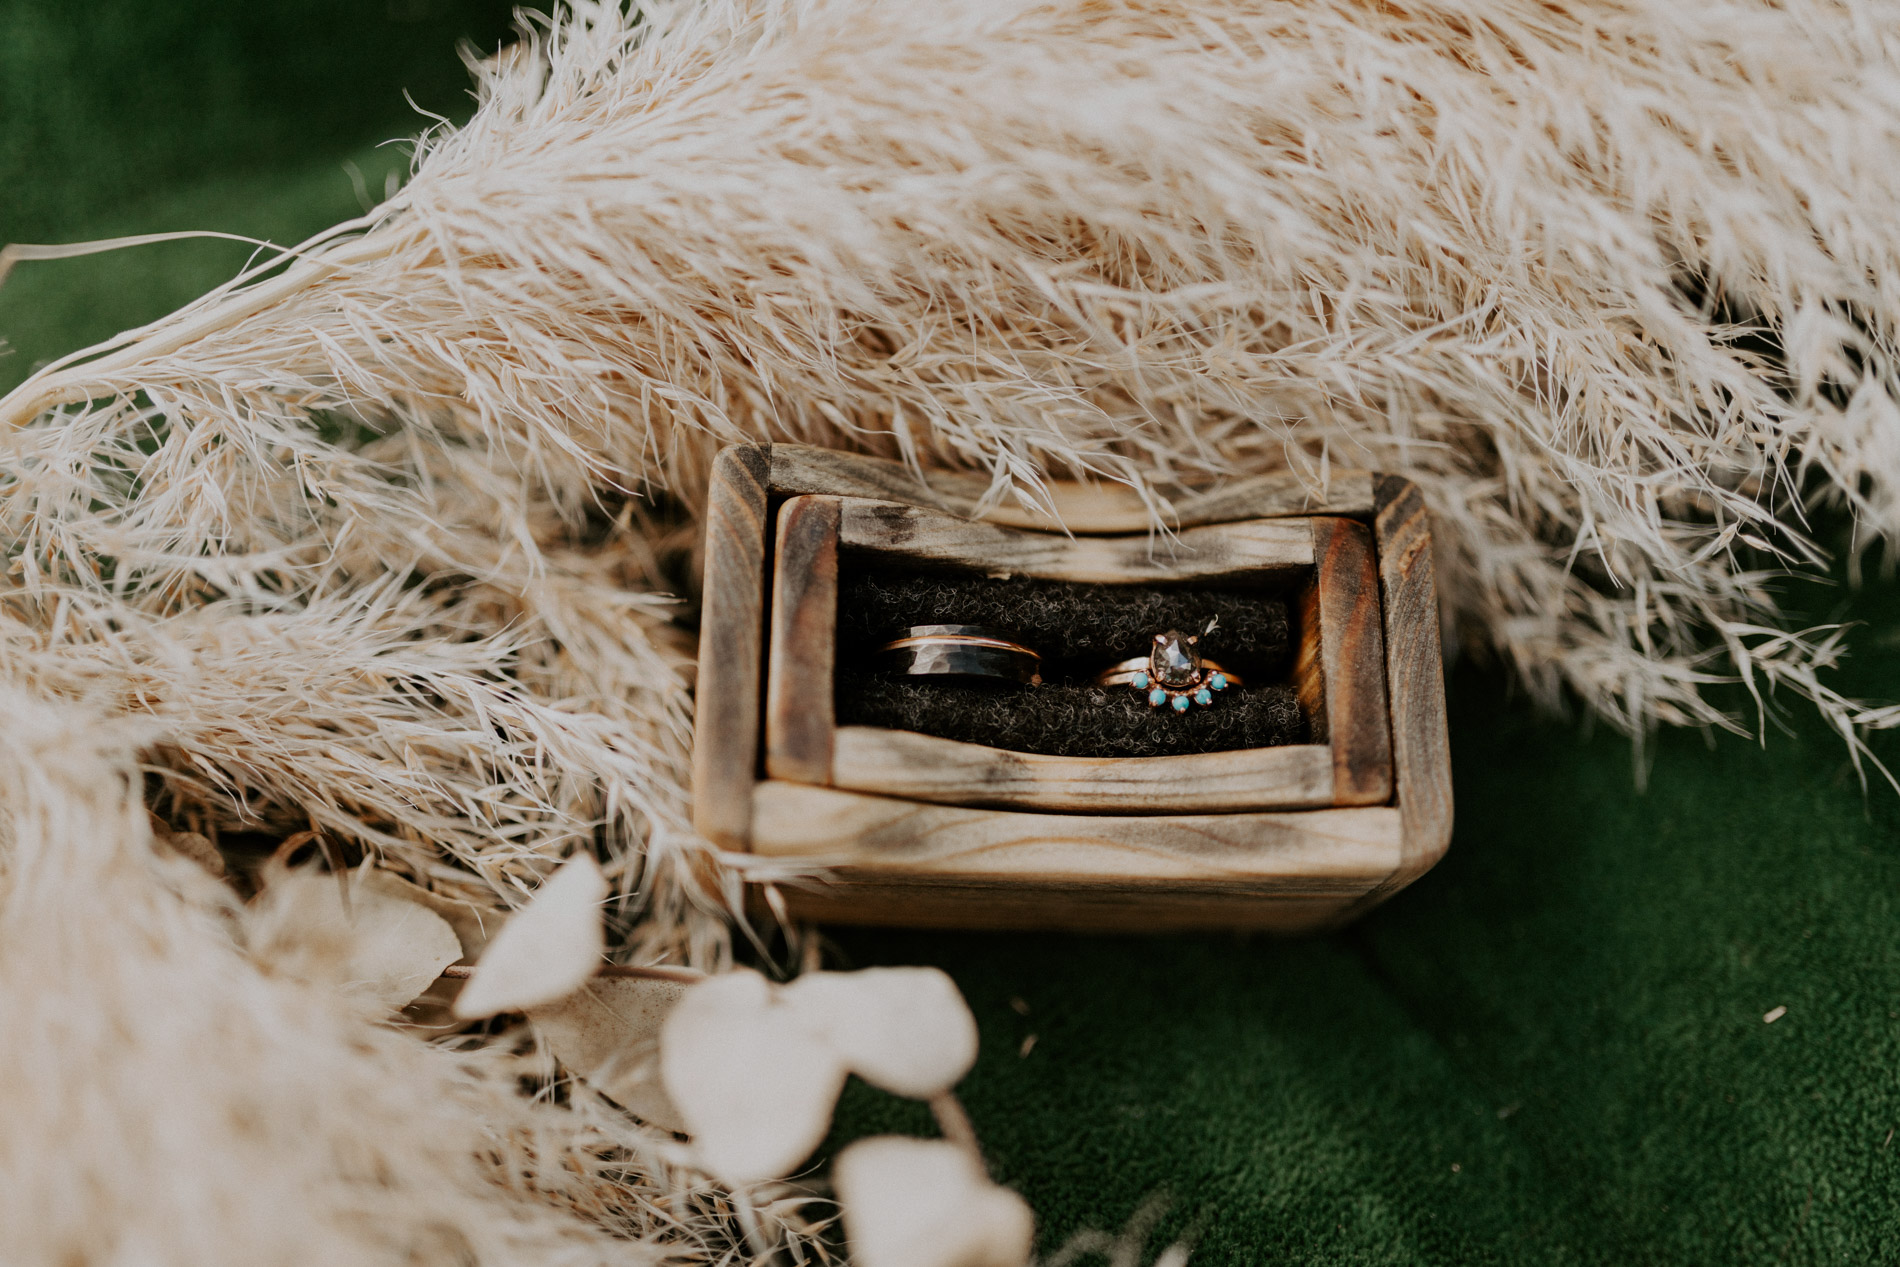 Bohemian wedding rings on green couch at East Texas wedding